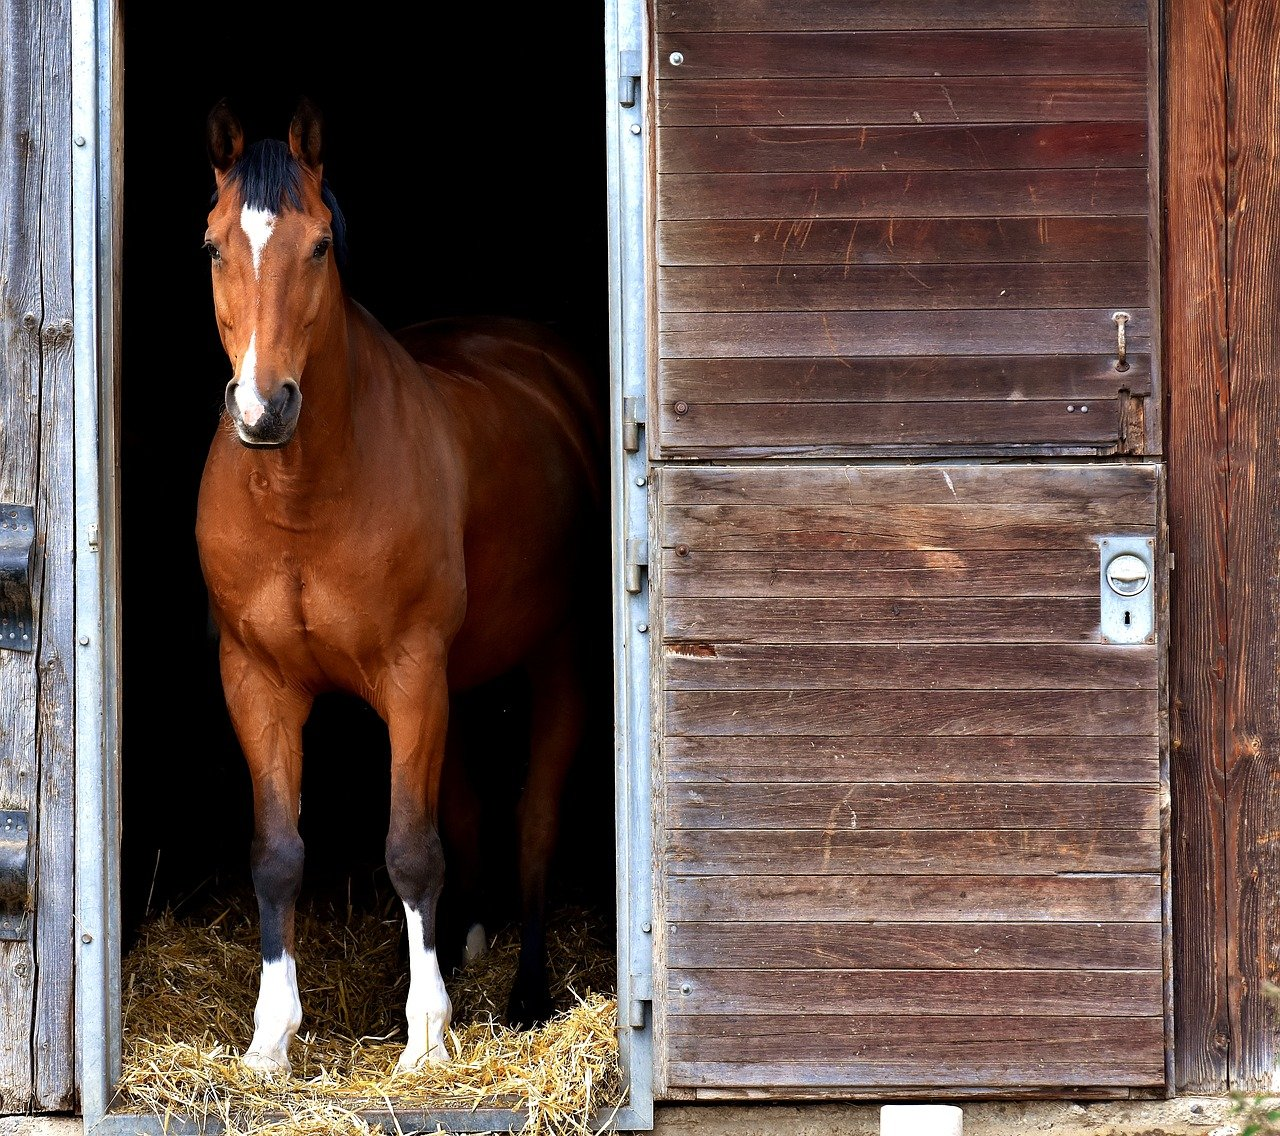 Horse stood in stable